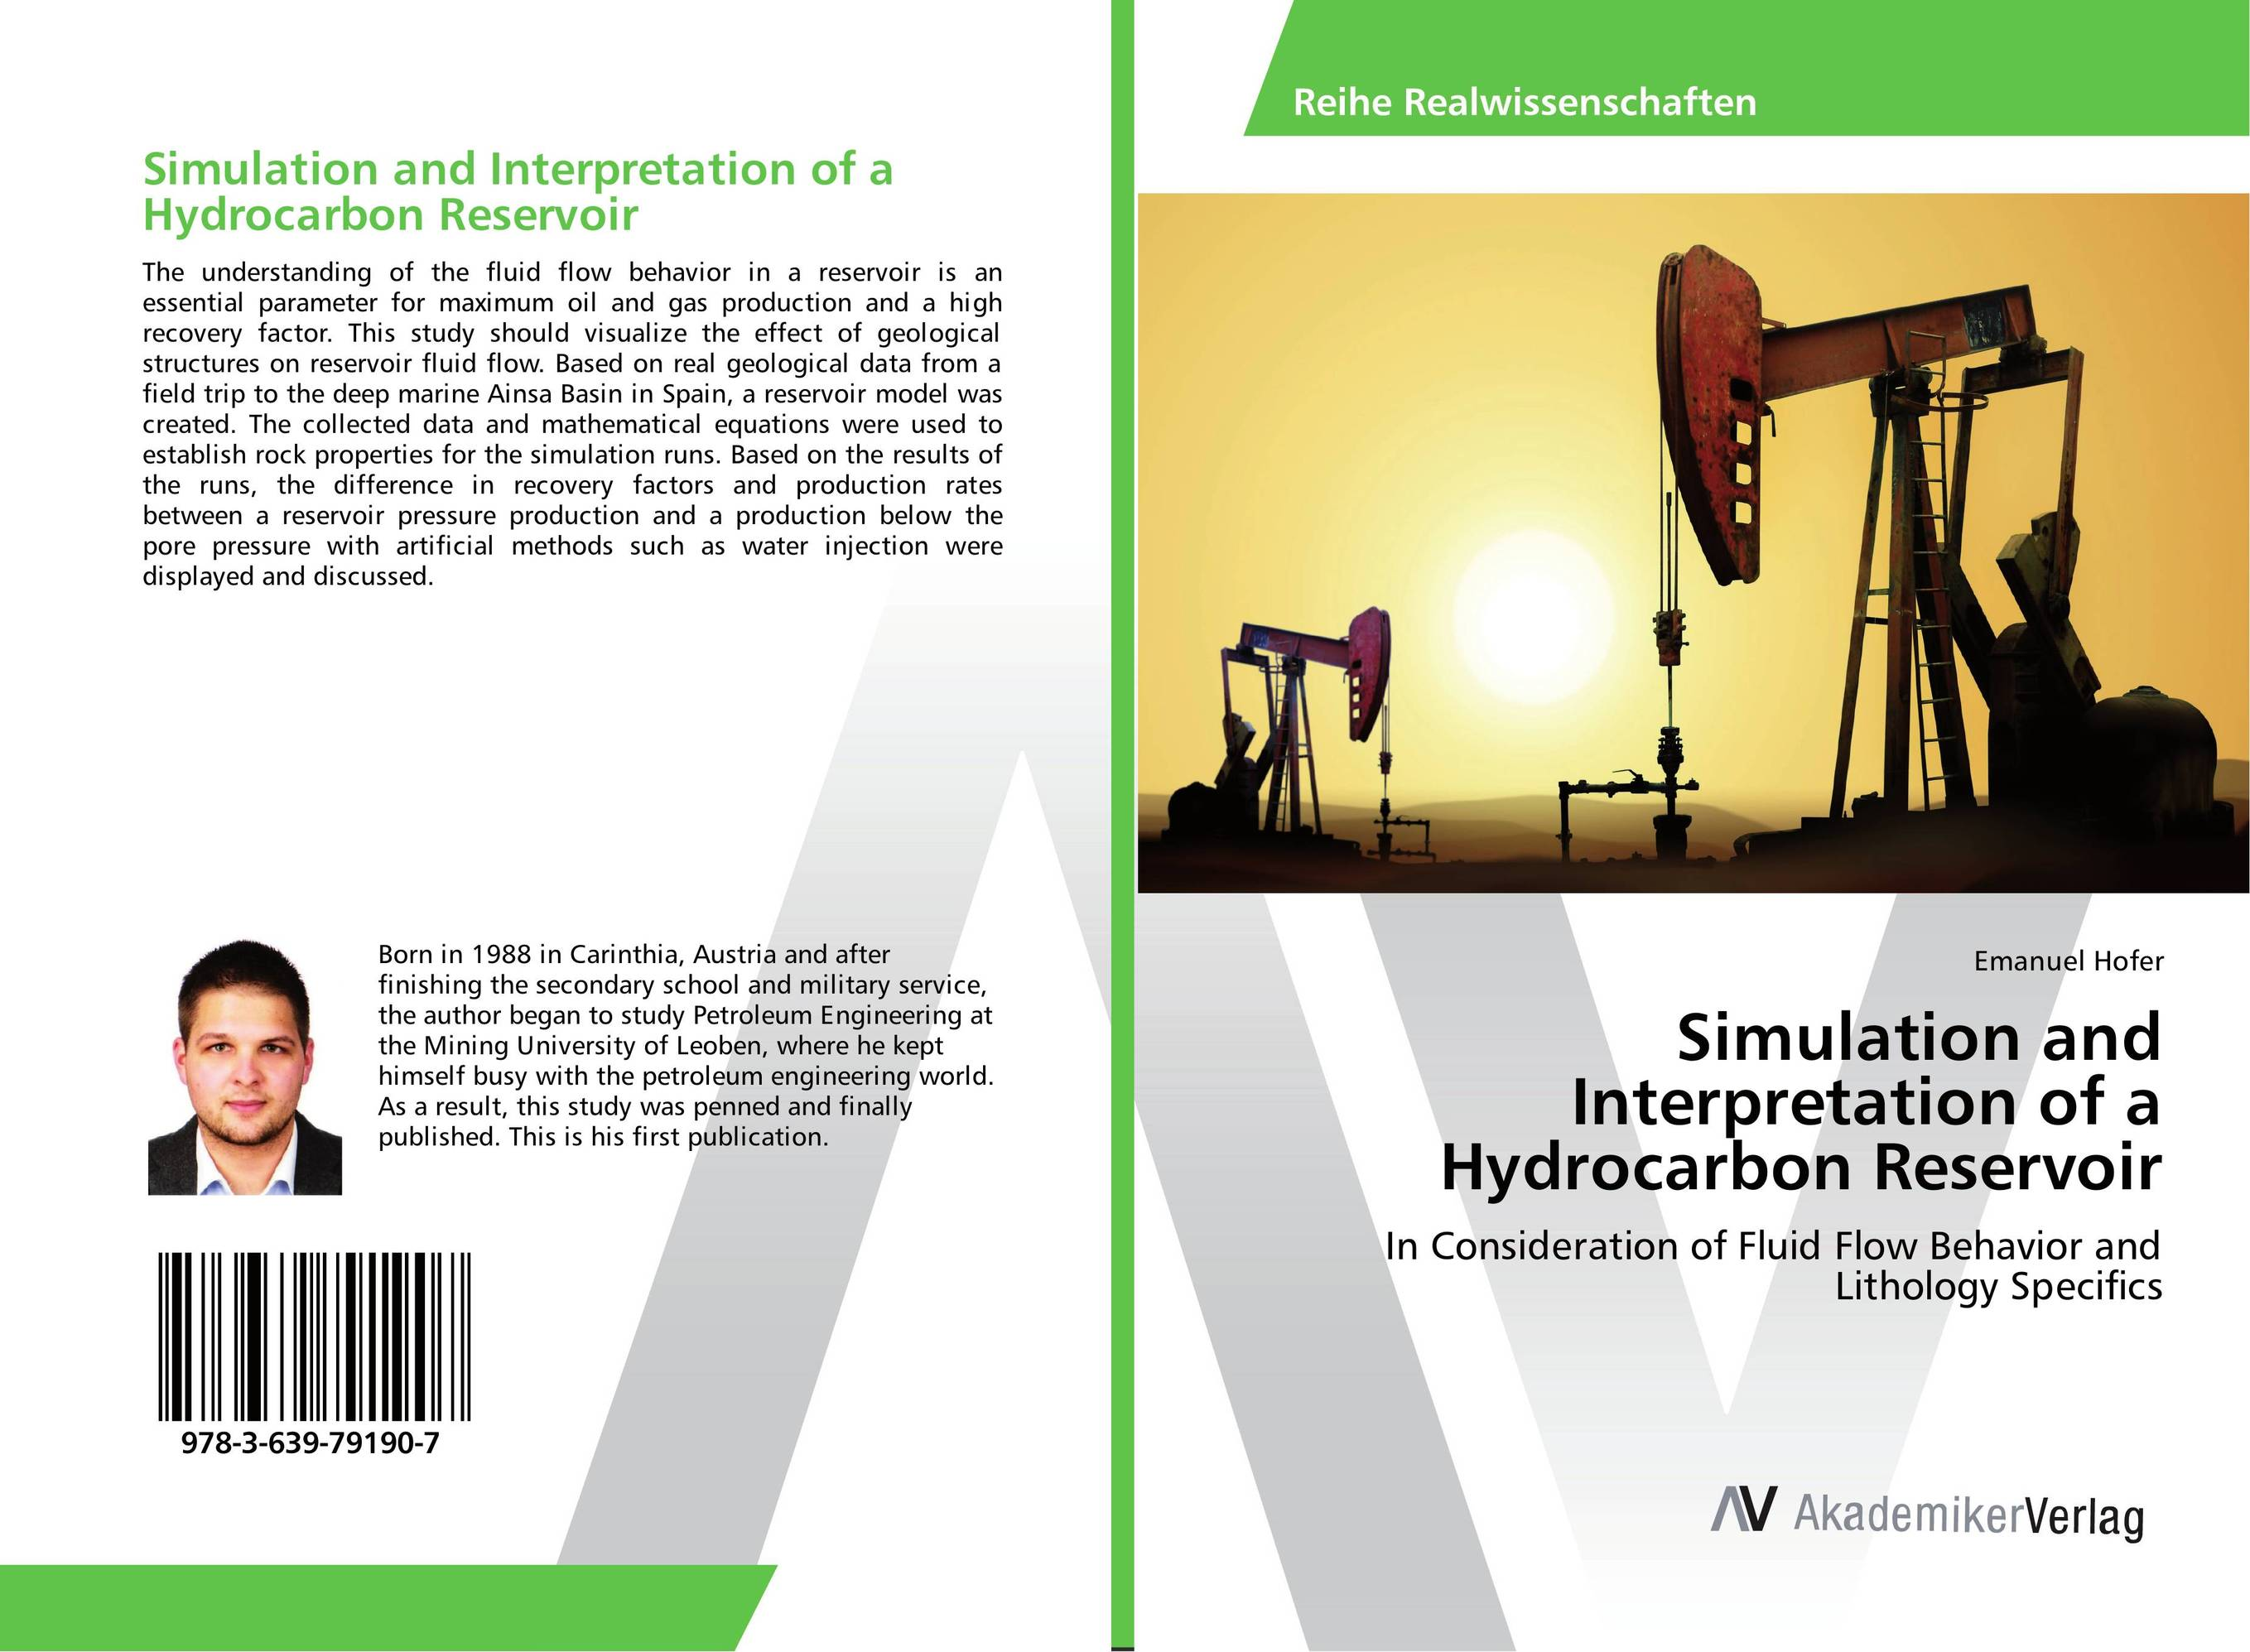 Simulation and Interpretation of a Hydrocarbon Reservoir  tarek ahmed working guide to reservoir rock properties and fluid flow